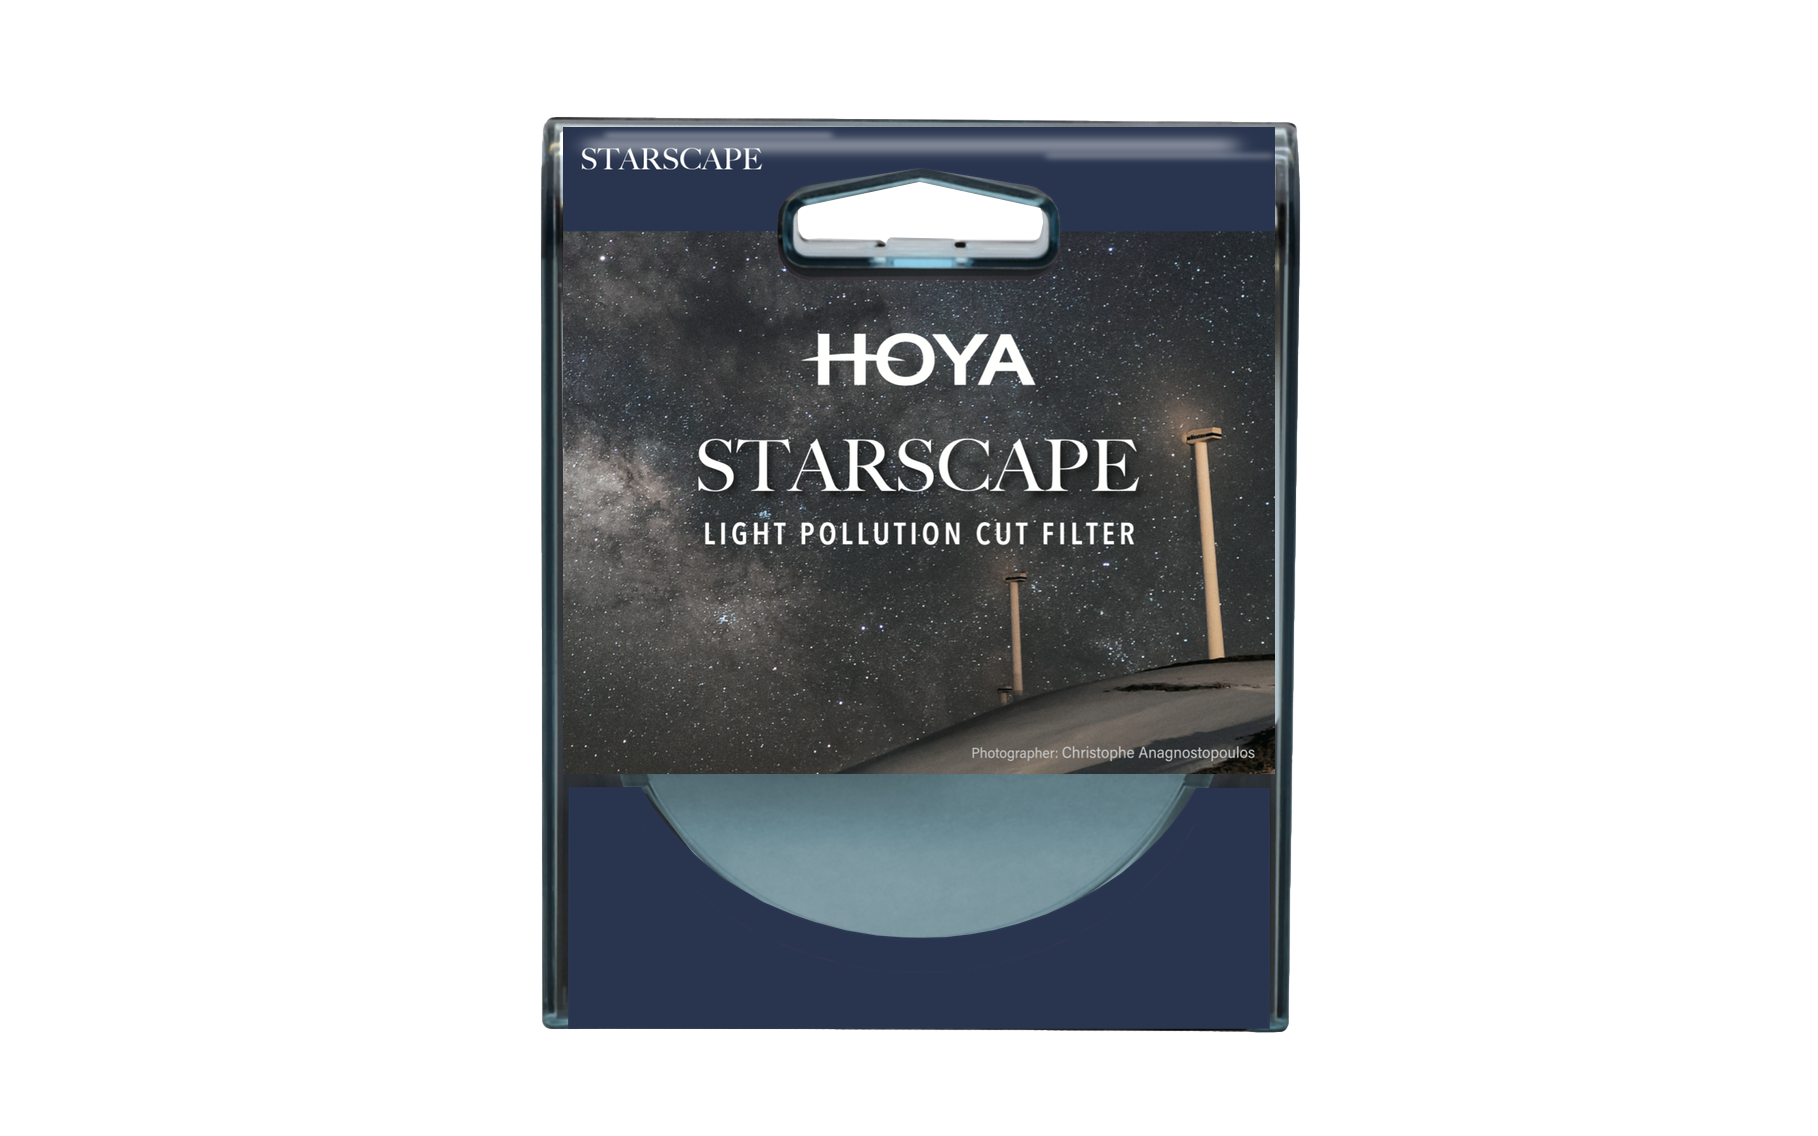 Hoya Starscape : the affordable light pollution filter